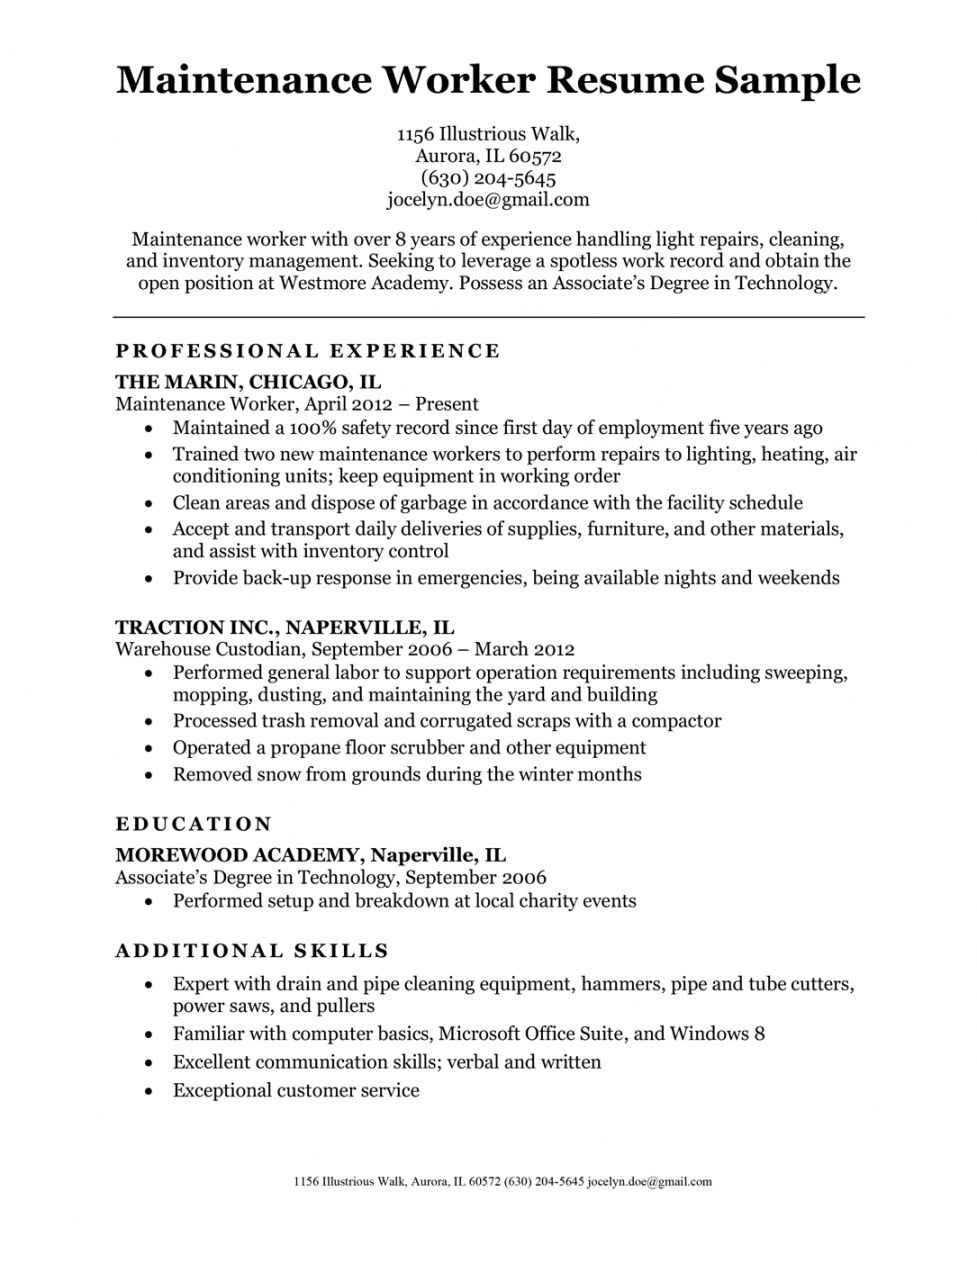 Get Our Sample Of Building Maintenance Job Description Template For Free Basic Resume Examples Resume Objective Statement Resume Examples